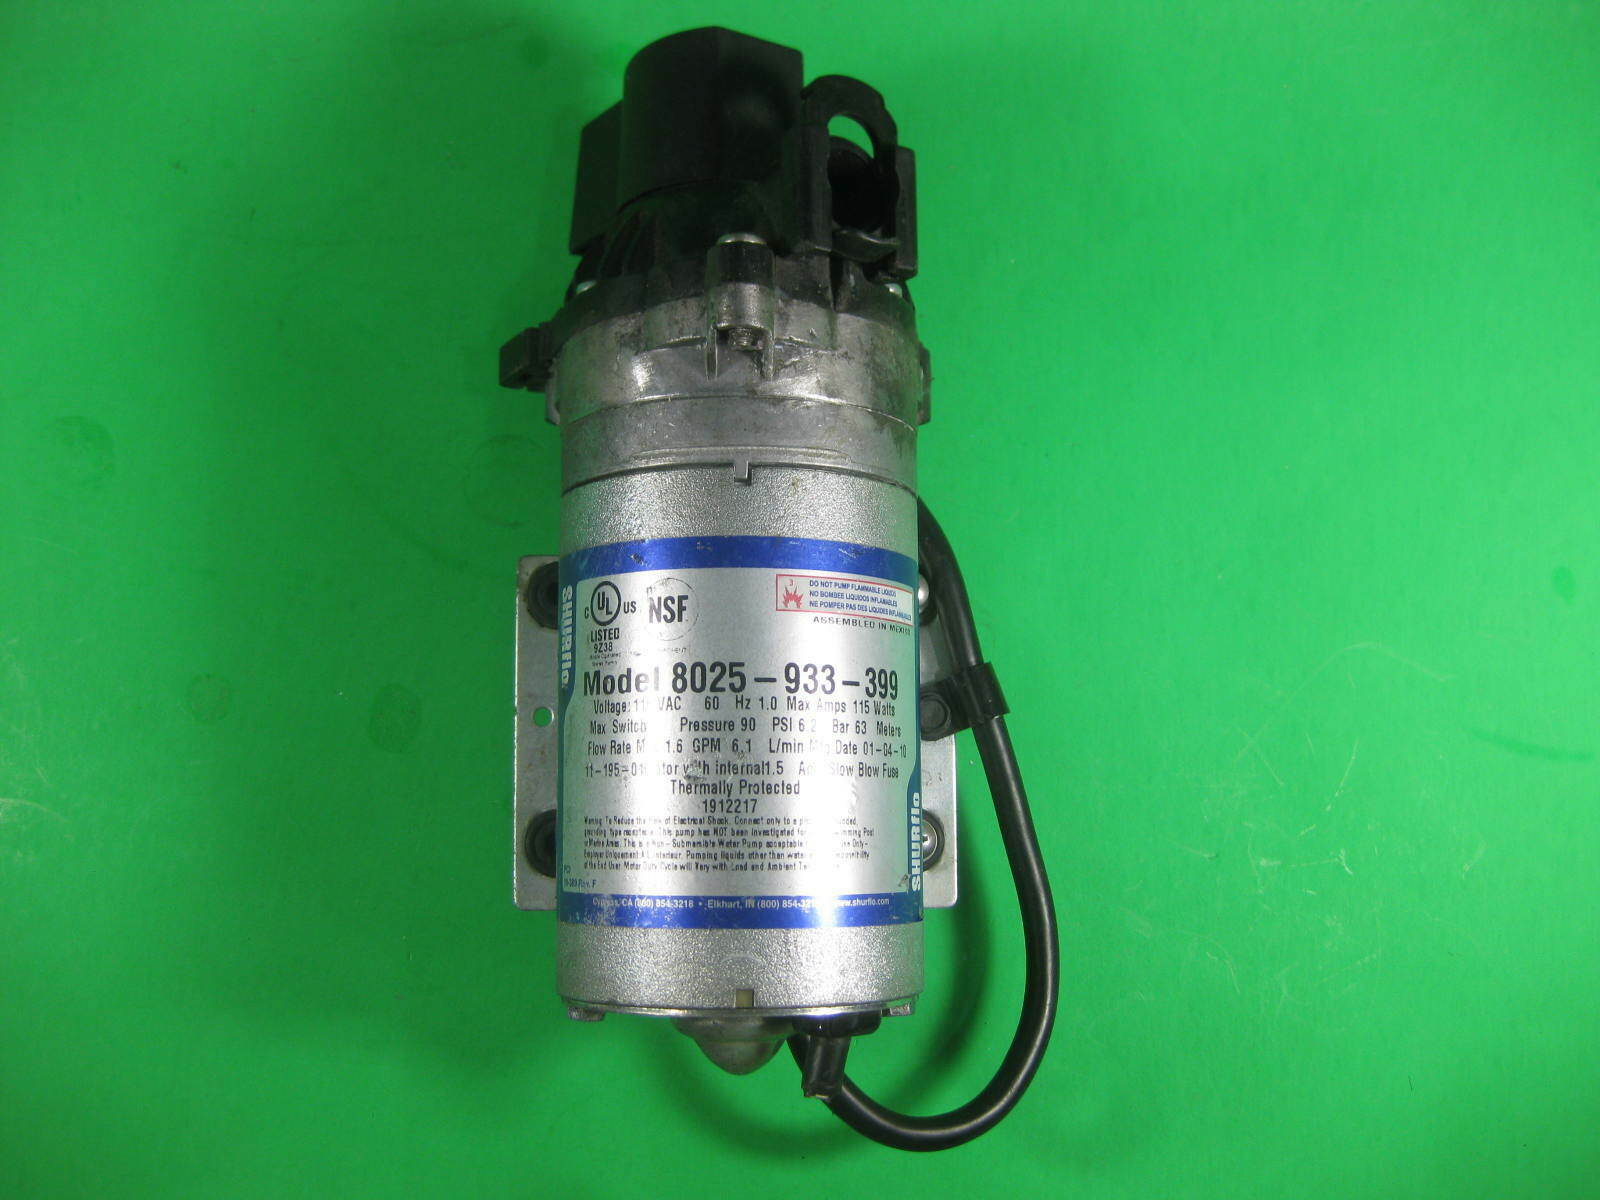 SHURFLO Booster Pump Model 8025-933-399 1ph 115vac